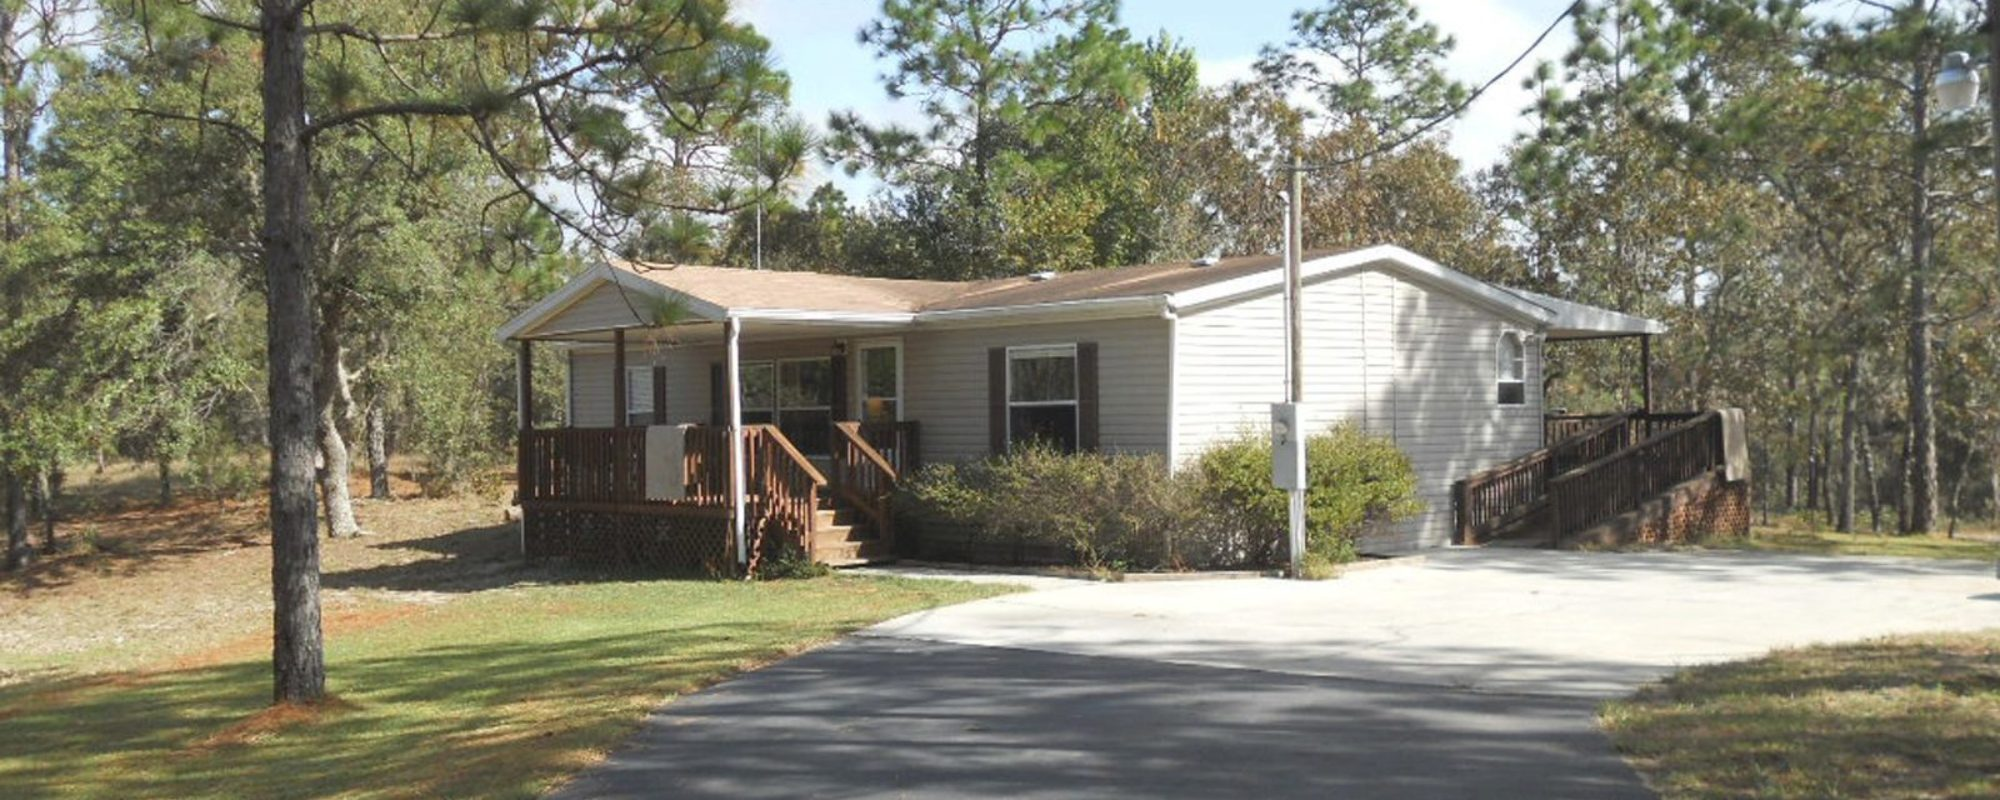 Buy Your Williston, Florida Home Today!